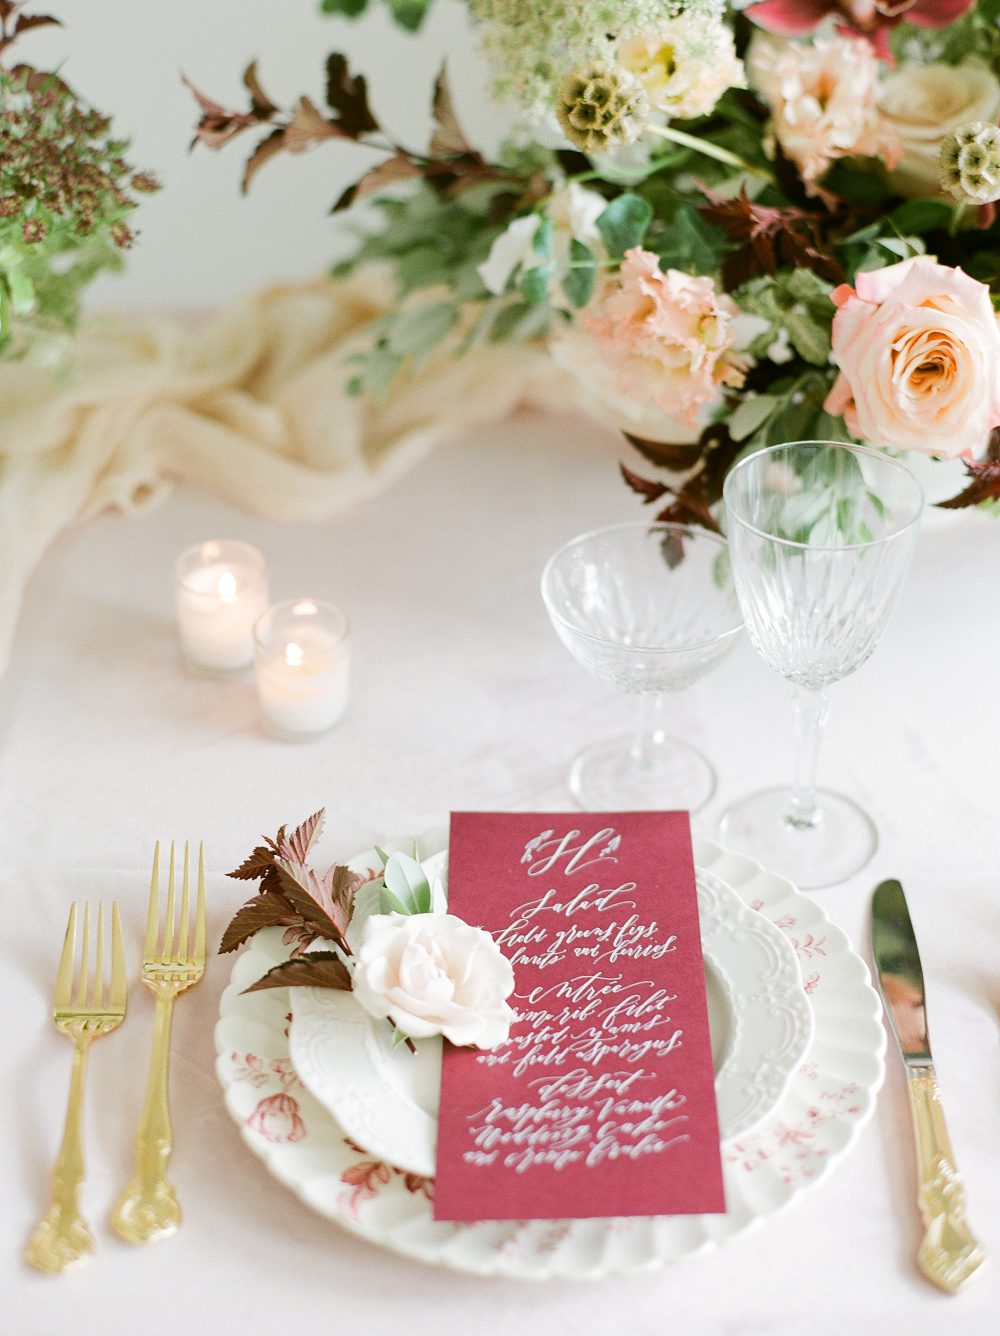 Burgundy and Blush Wedding Inspiration Styled Shoot Vintage Chargers